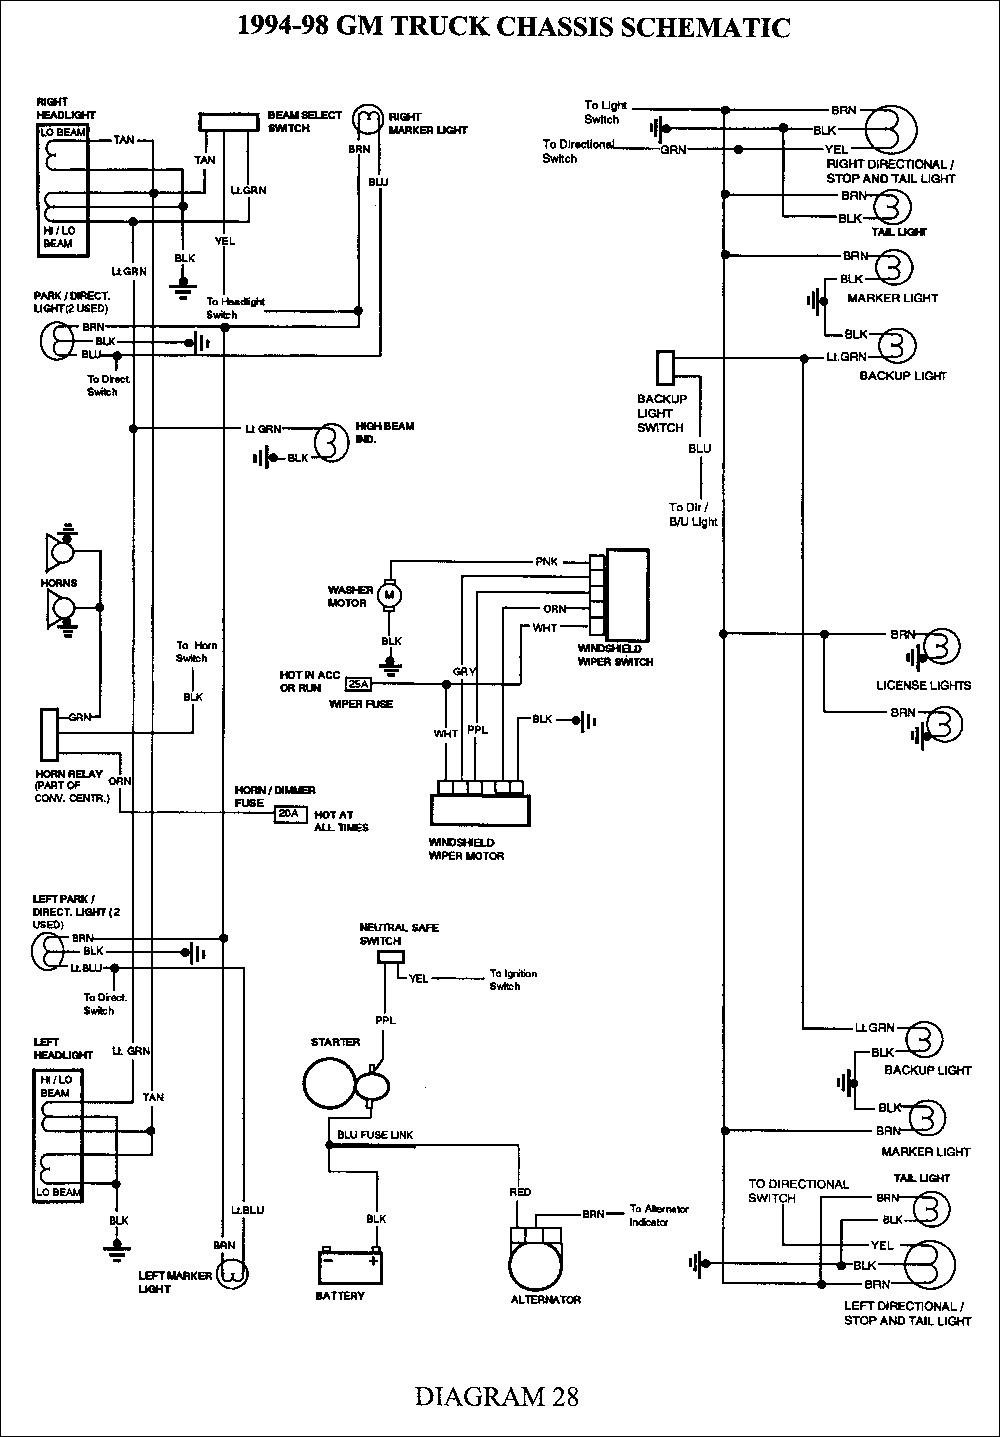 1990 chevy silverado tail light wiring diagram carbonvote mudit blog \u20221990 chevy 1500 fuel pump wiring diagram qtm zaislunamai uk u2022 rh qtm zaislunamai uk 1990 chevy truck brake light wiring diagram